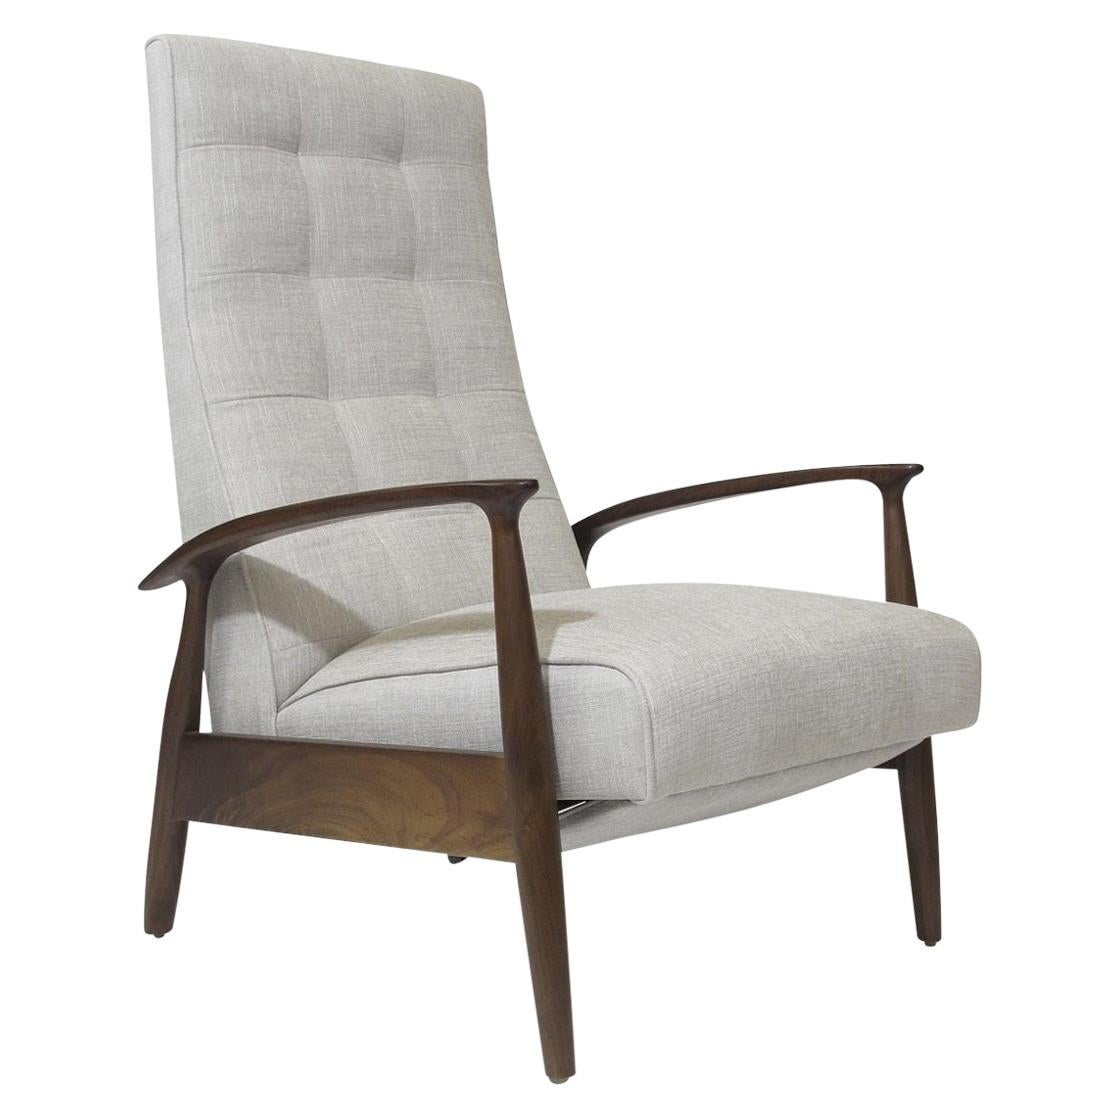 Milo Baughman for Thayer Coggin Recliner Lounge Chair